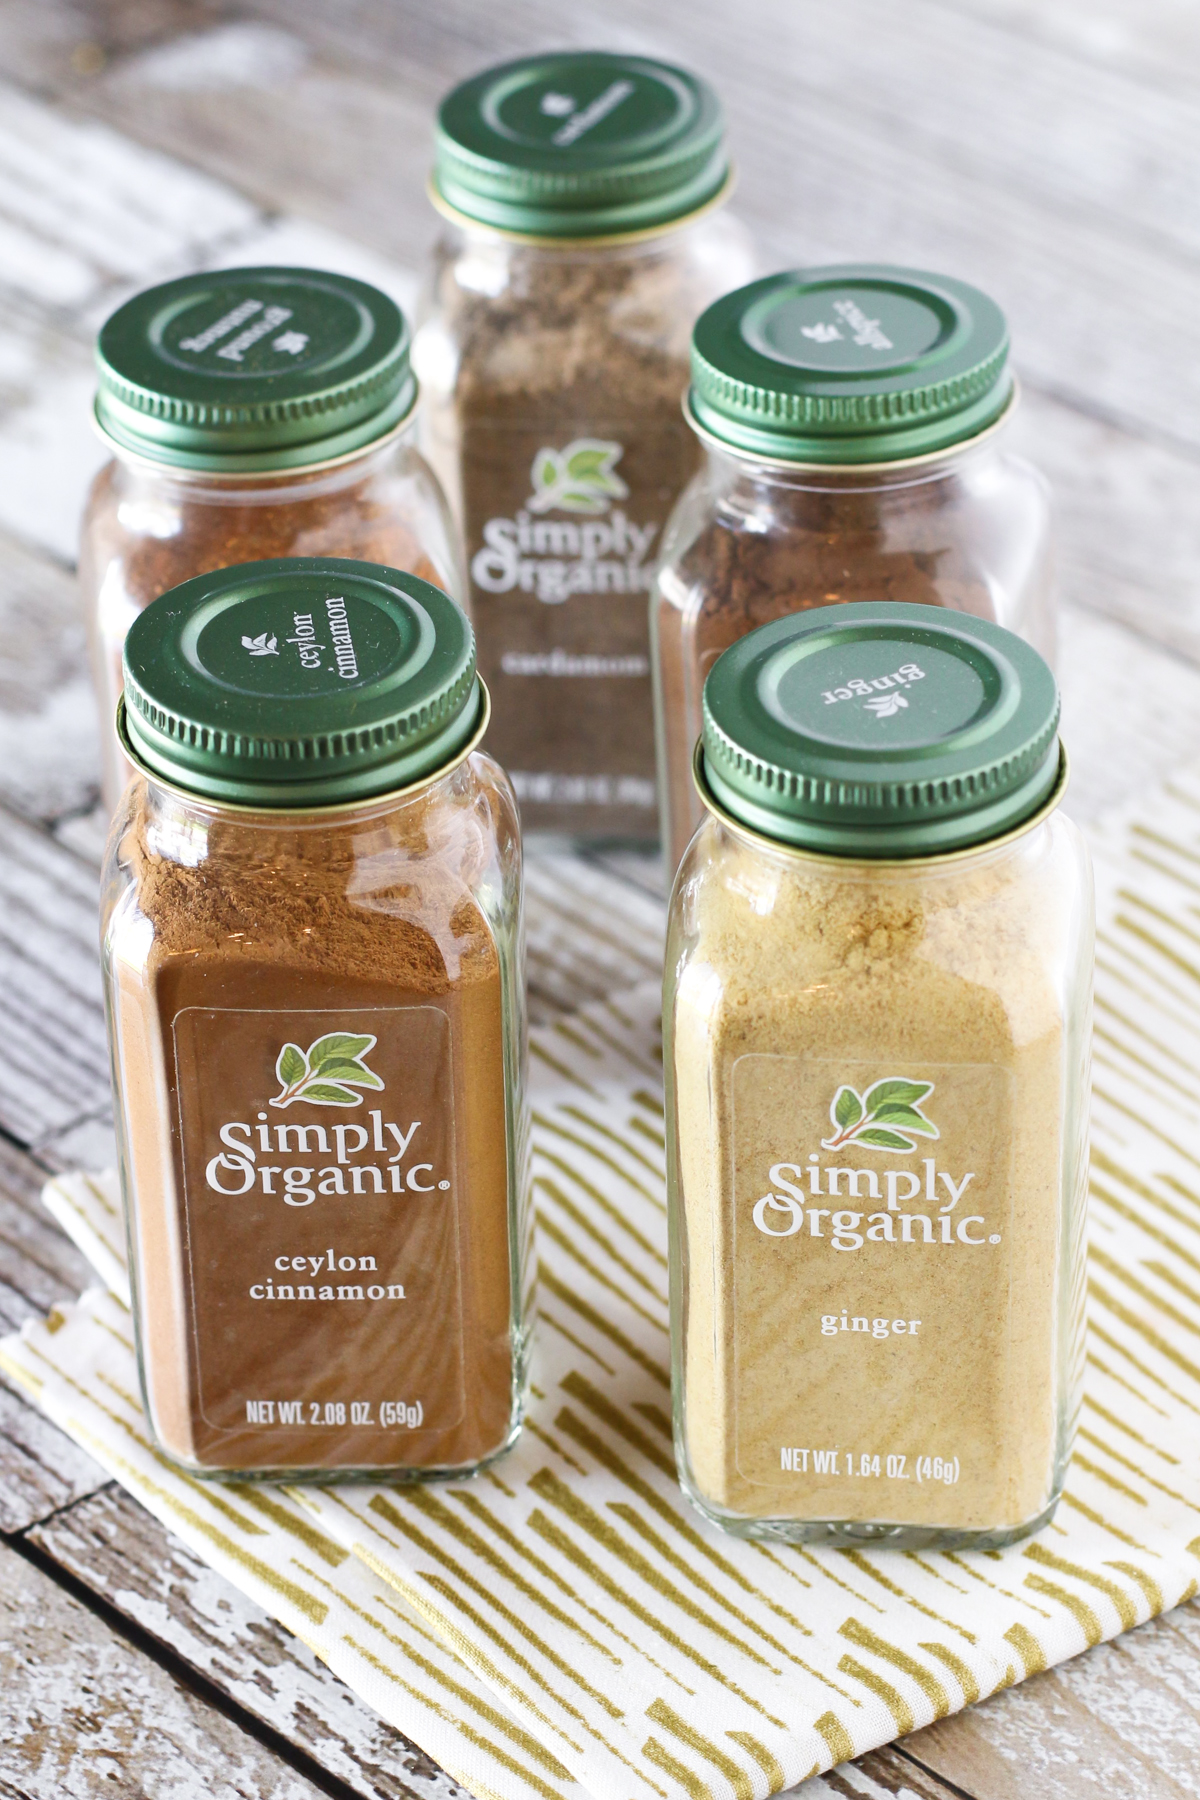 These fall spices from Simply Organic make this gluten free vegan chai spiced pear crisp simply delicious!